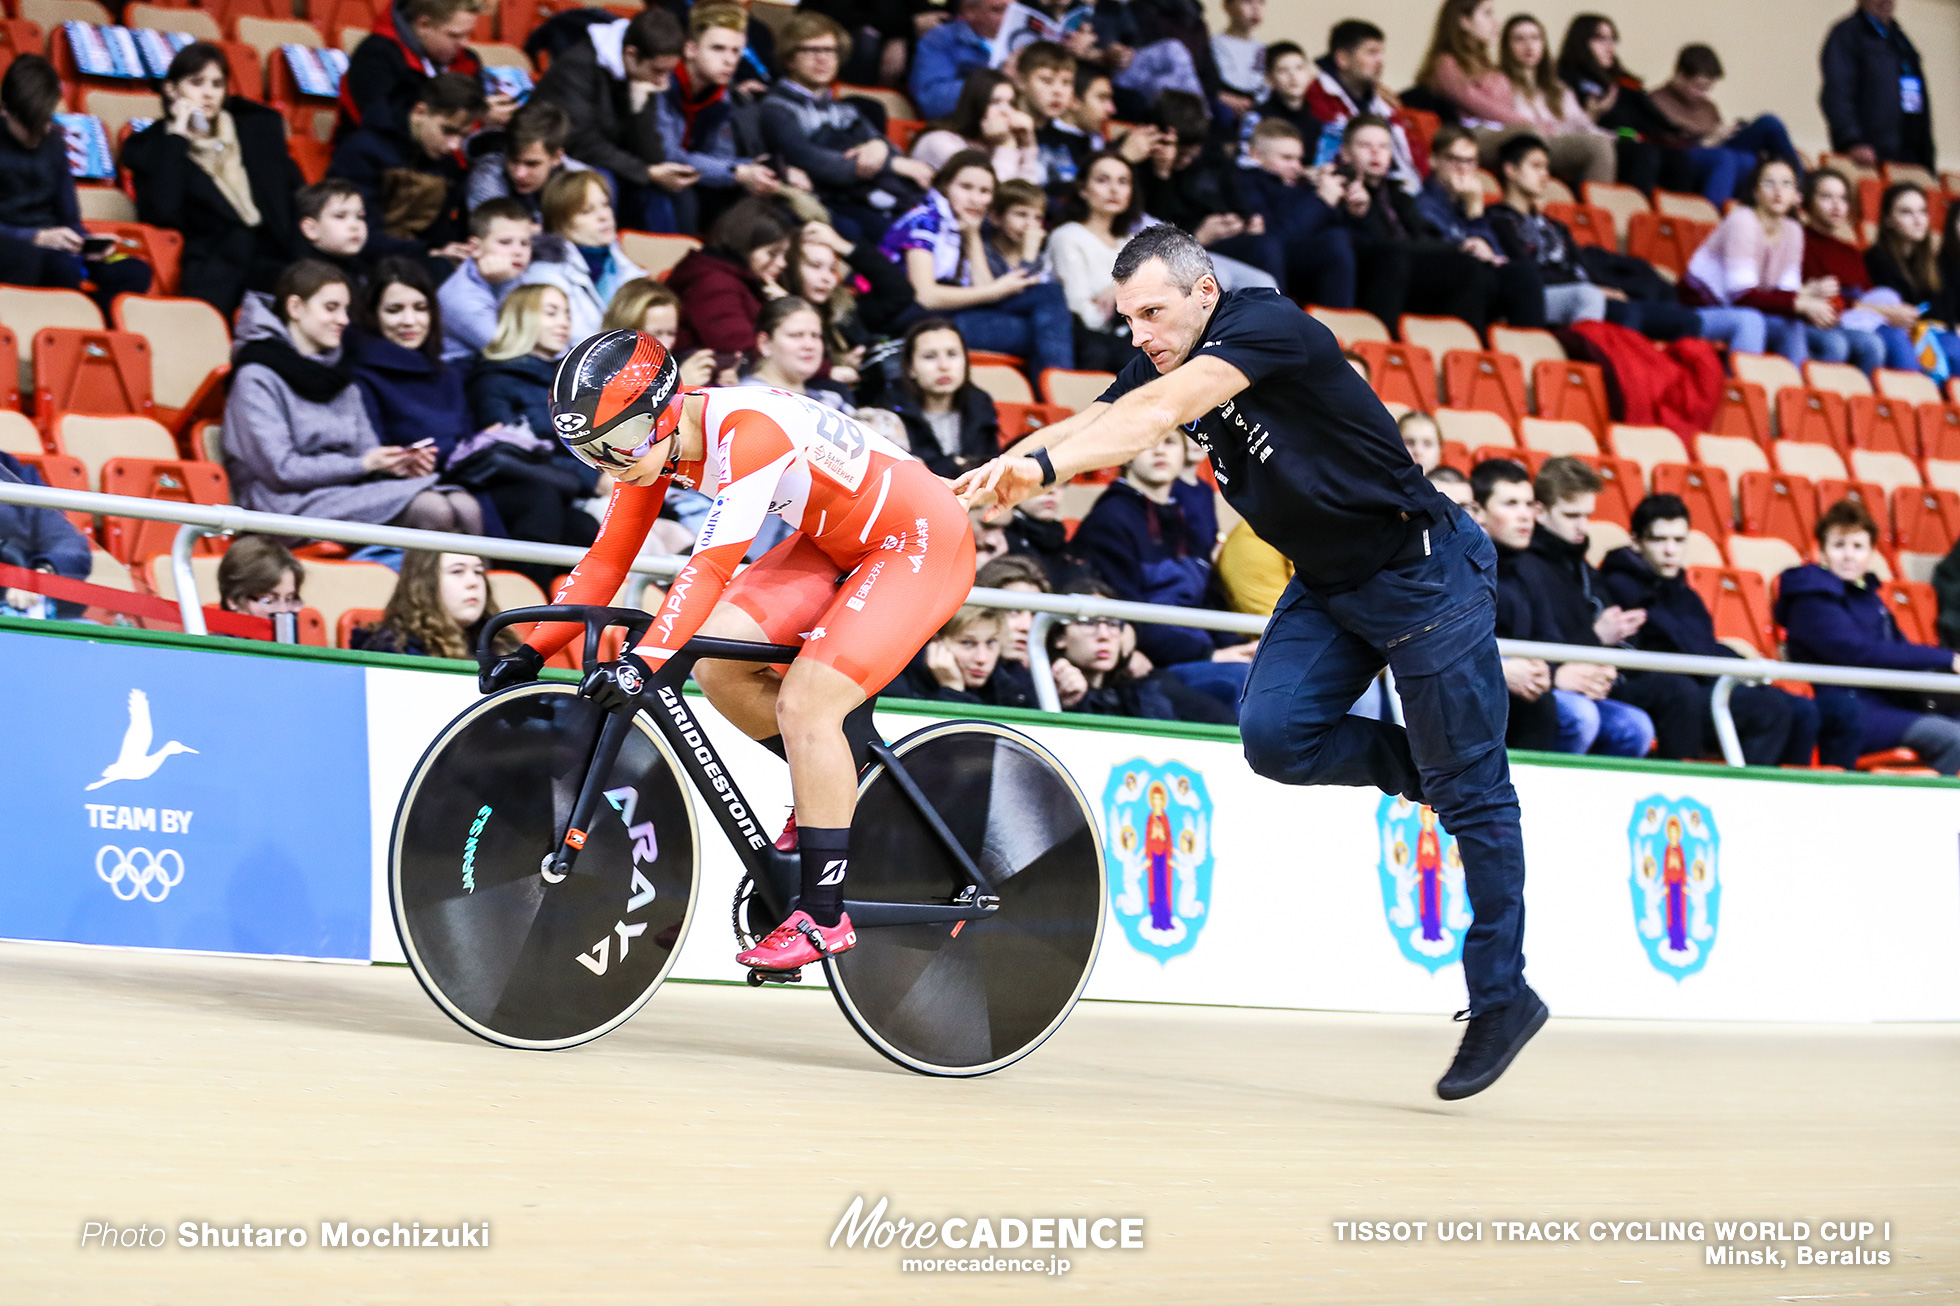 Women's Sprint / TISSOT UCI TRACK CYCLING WORLD CUP I, Minsk, Beralus